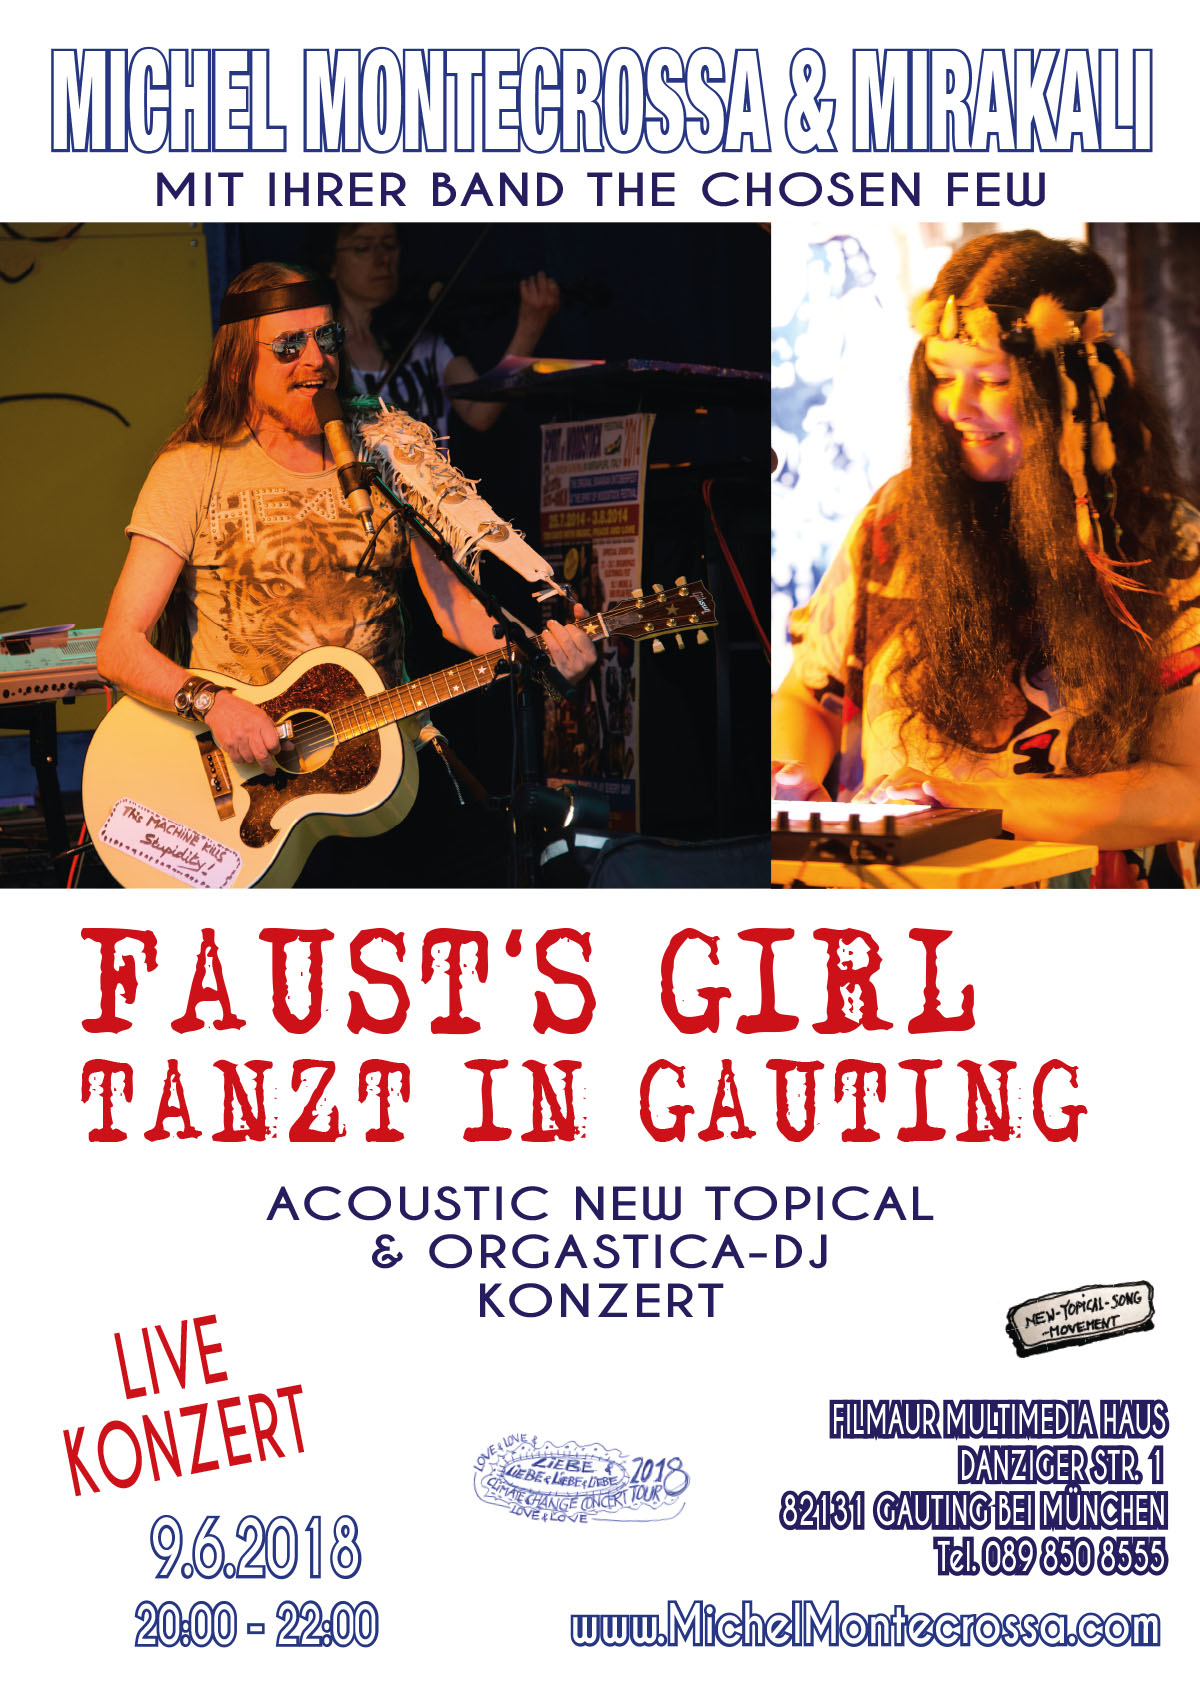 Faust Girls tant in Gauting